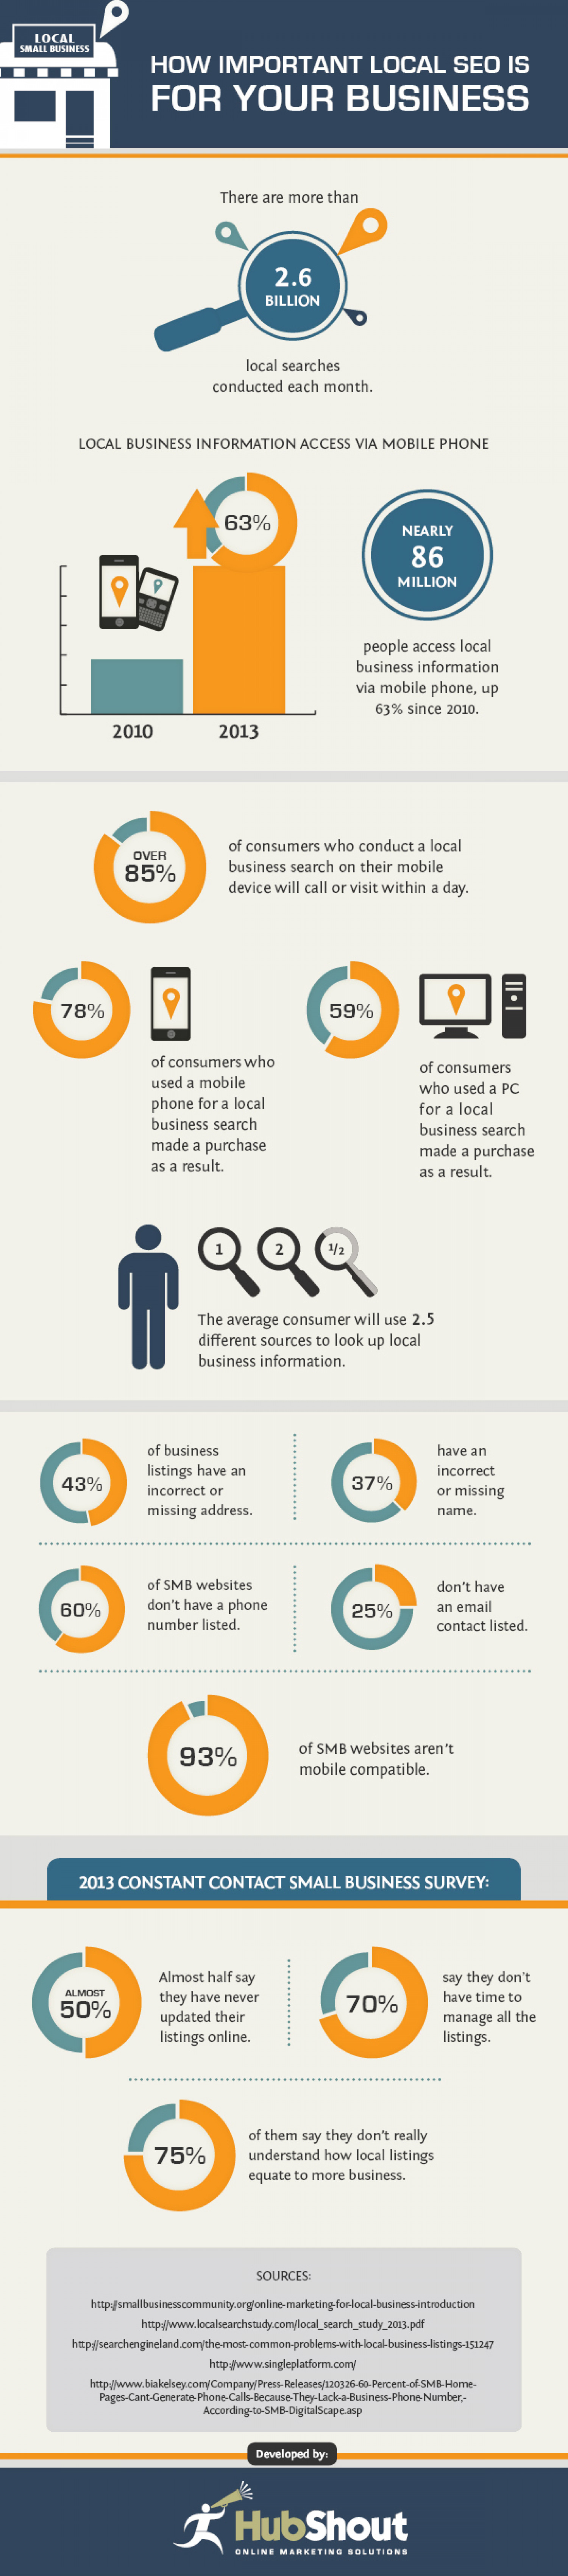 How Important Local SEO is for Your Business Infographic